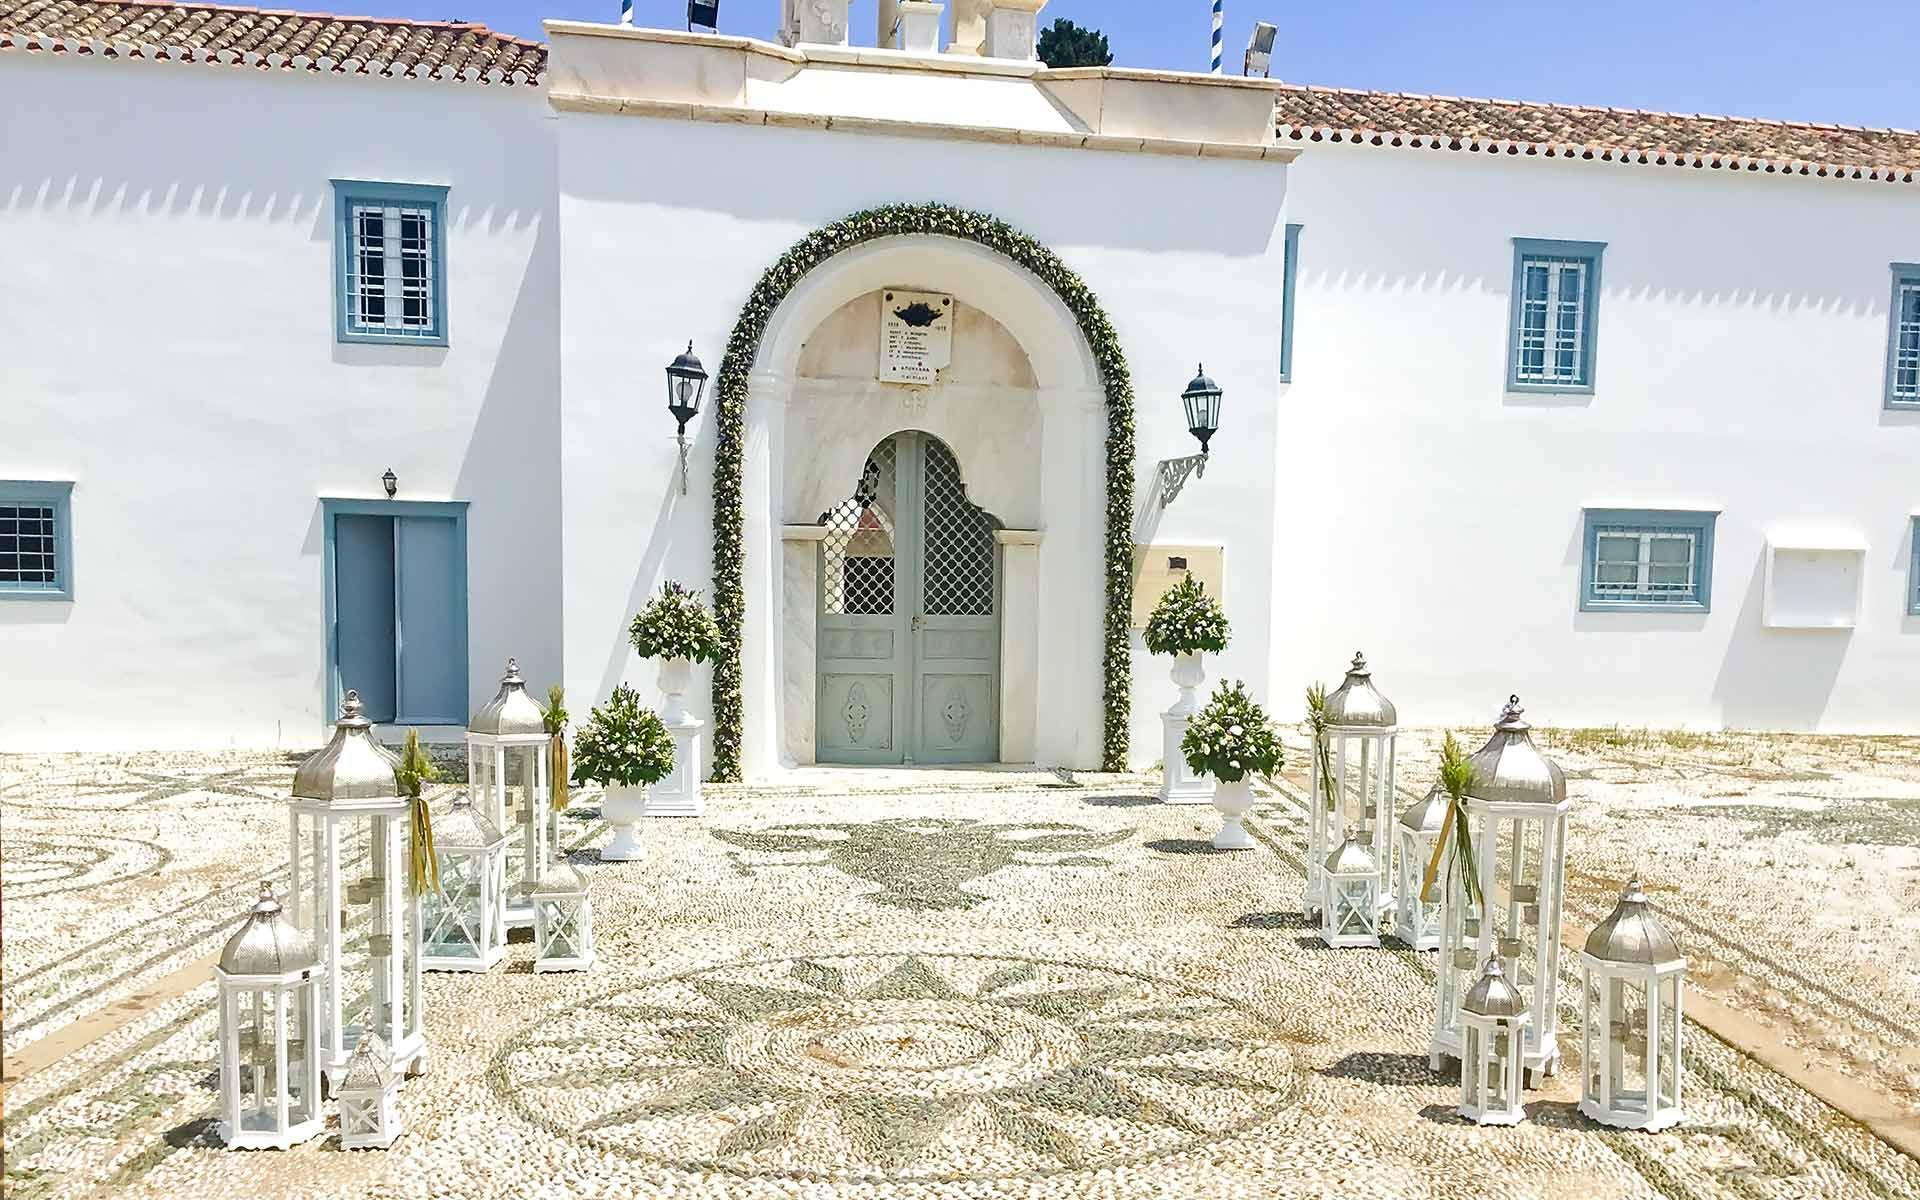 Agios-Nikolaos-in-Spetses-full-of-beautiful-marble-decorative-archways-and-lovely-mosaic-tiled-floors-decorated-for-a-wedding